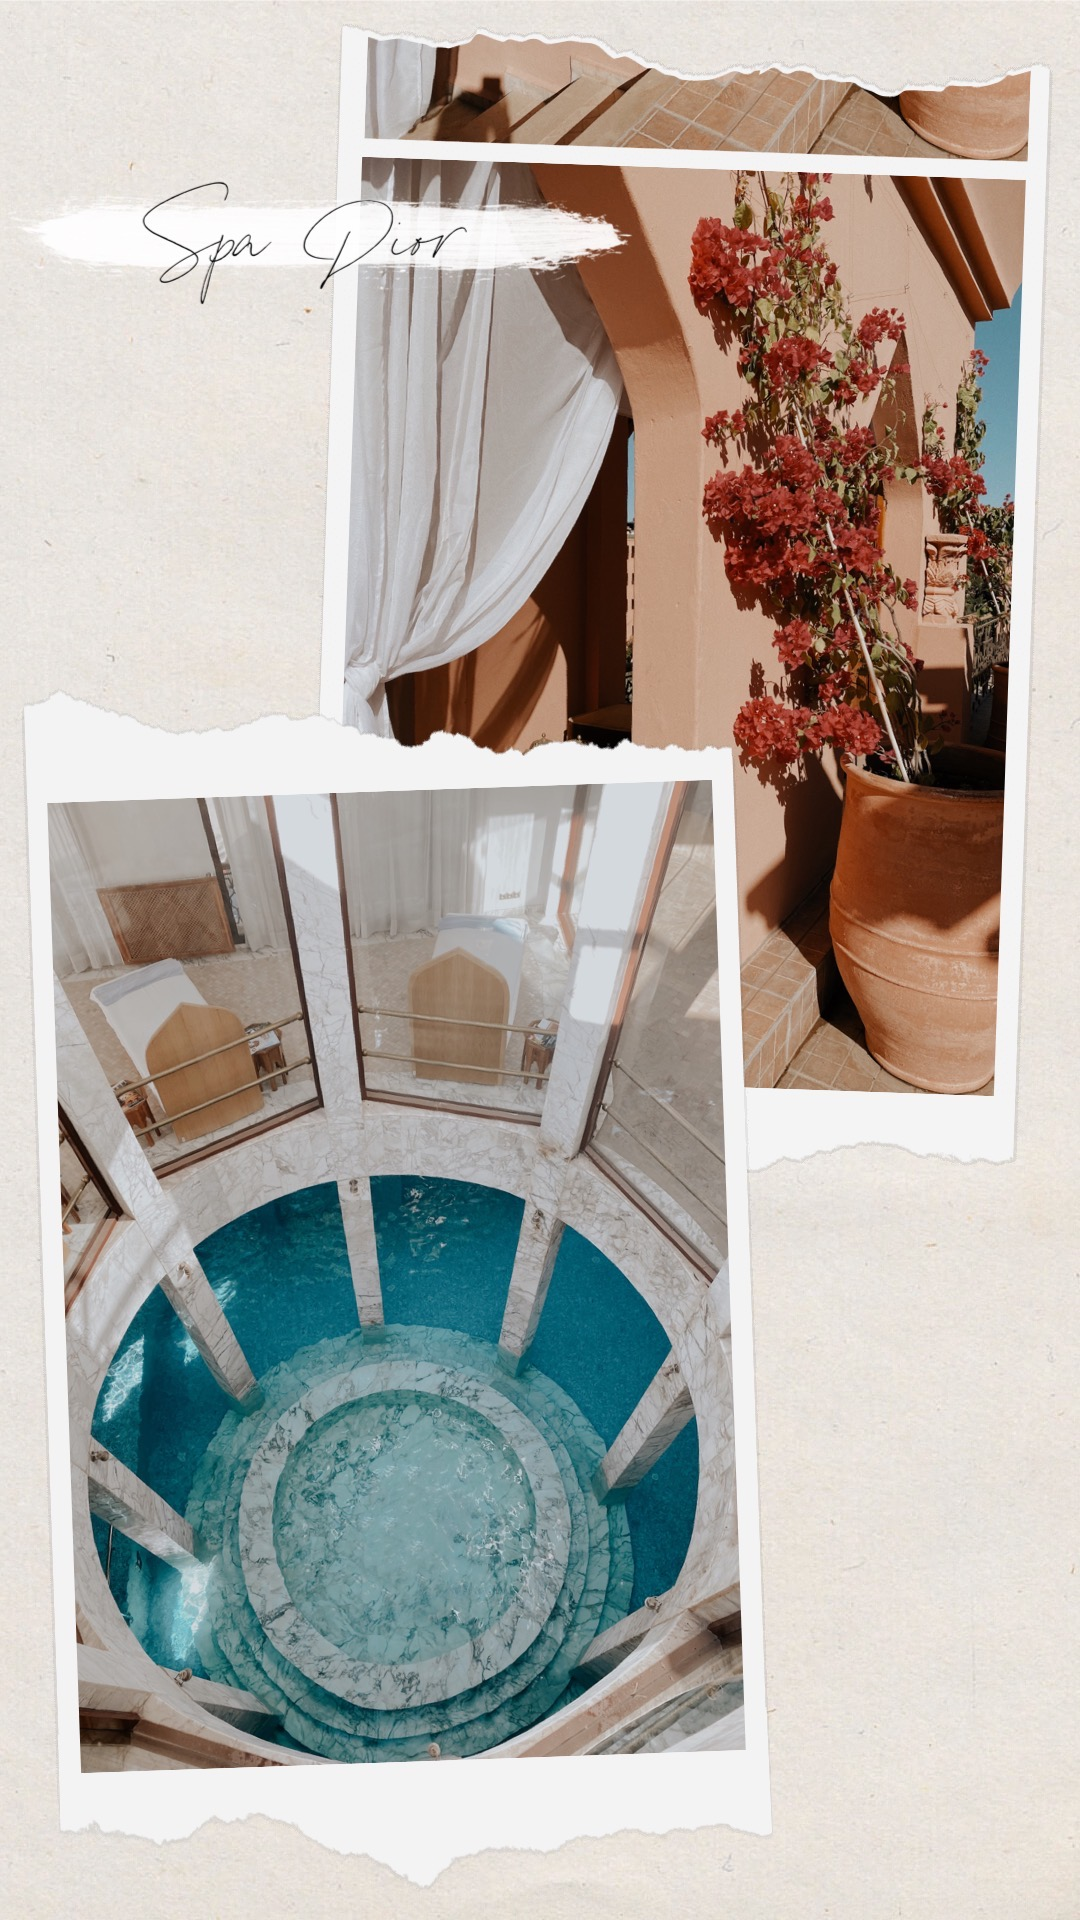 Dior Spa Marrakech